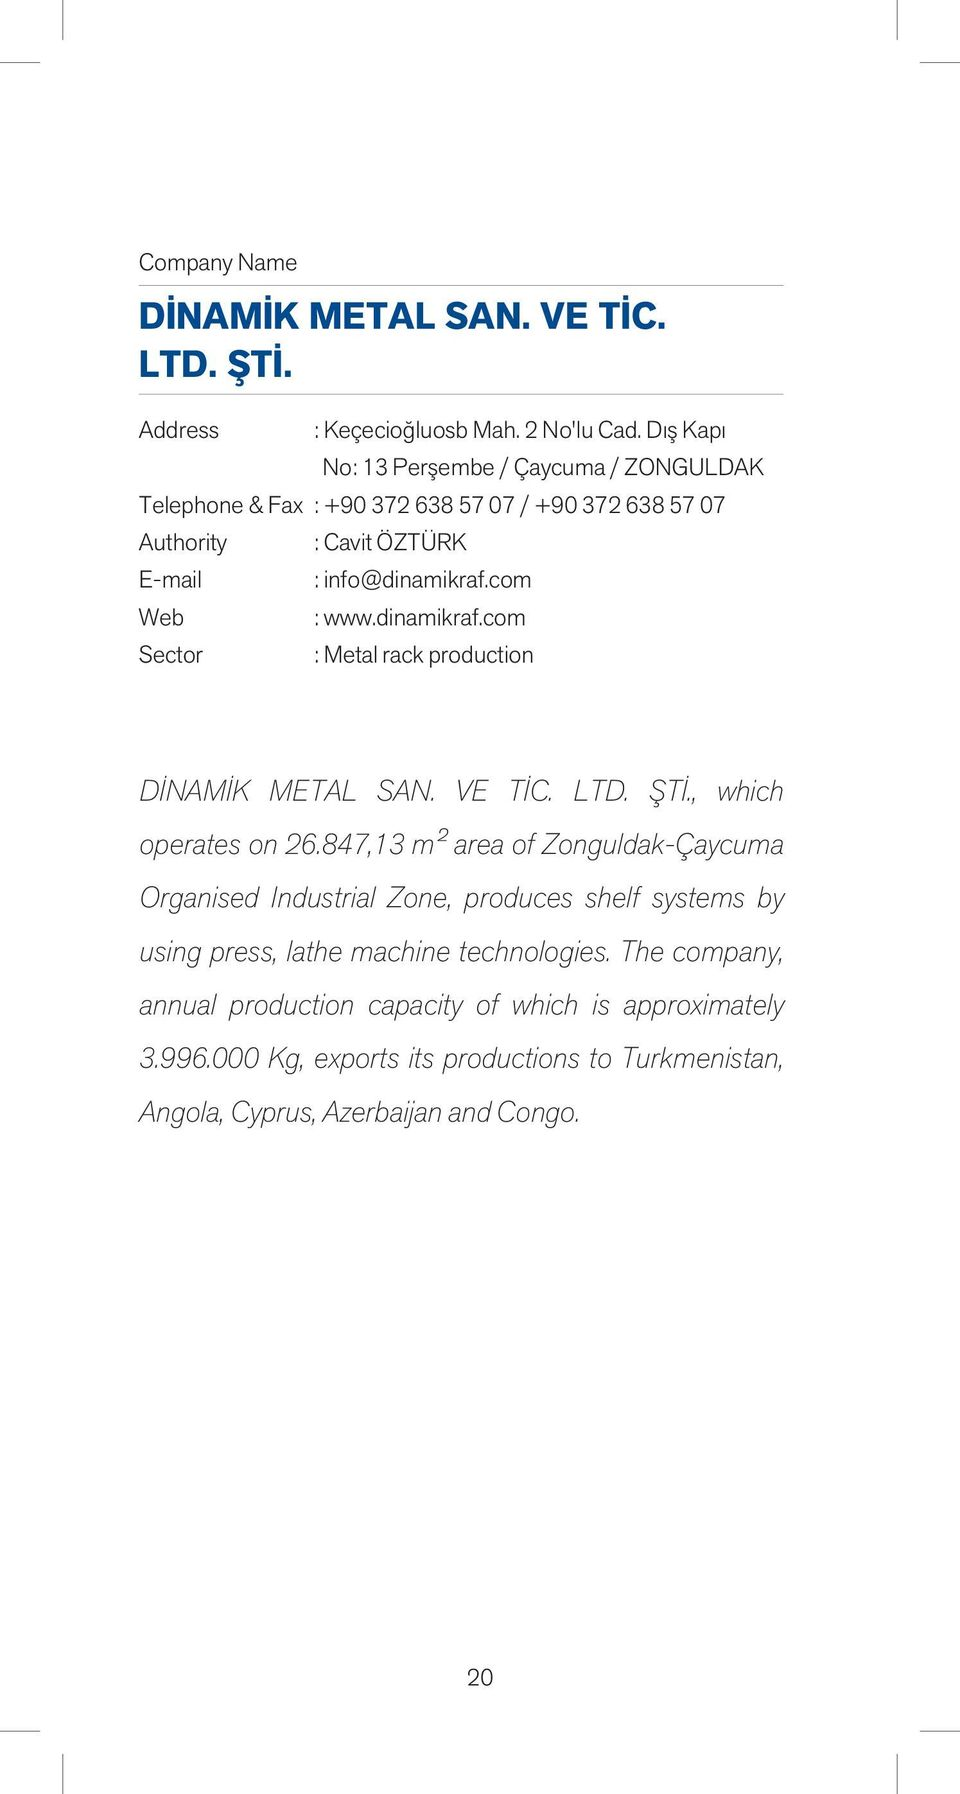 dinamikraf.com : Metal rack production DİNAMİK METAL SAN. VE TİC. LTD. ŞTİ., which operates on 26.